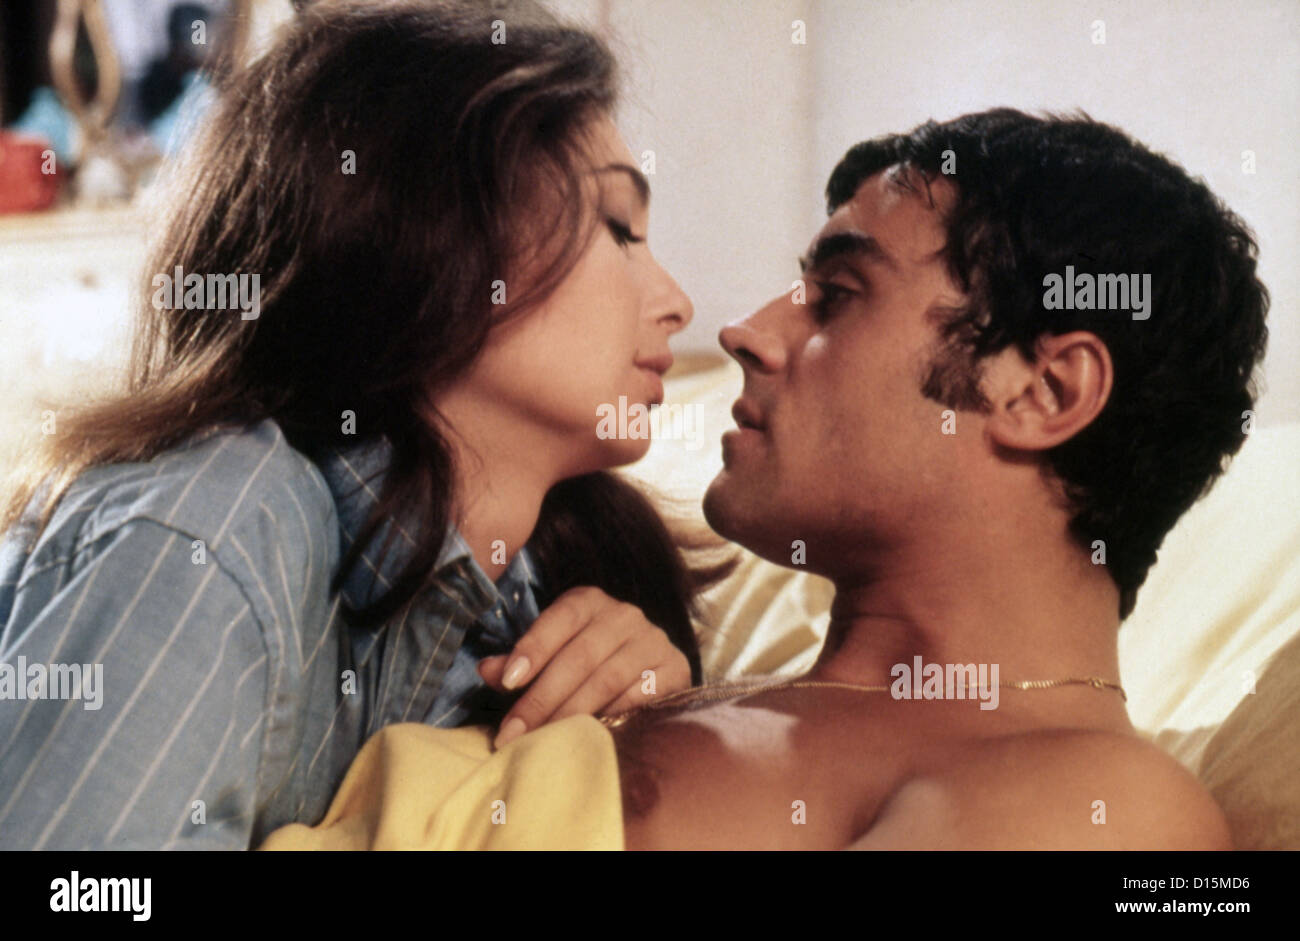 IF ITS TUESDAY IT MUST BE BELGIUM (1969) SUZANNE PLESHETTE, IAN MCSHANE, MEL STUART (DIR) ITTB 002 MOVIESTORE COLLECTION Stock Photo